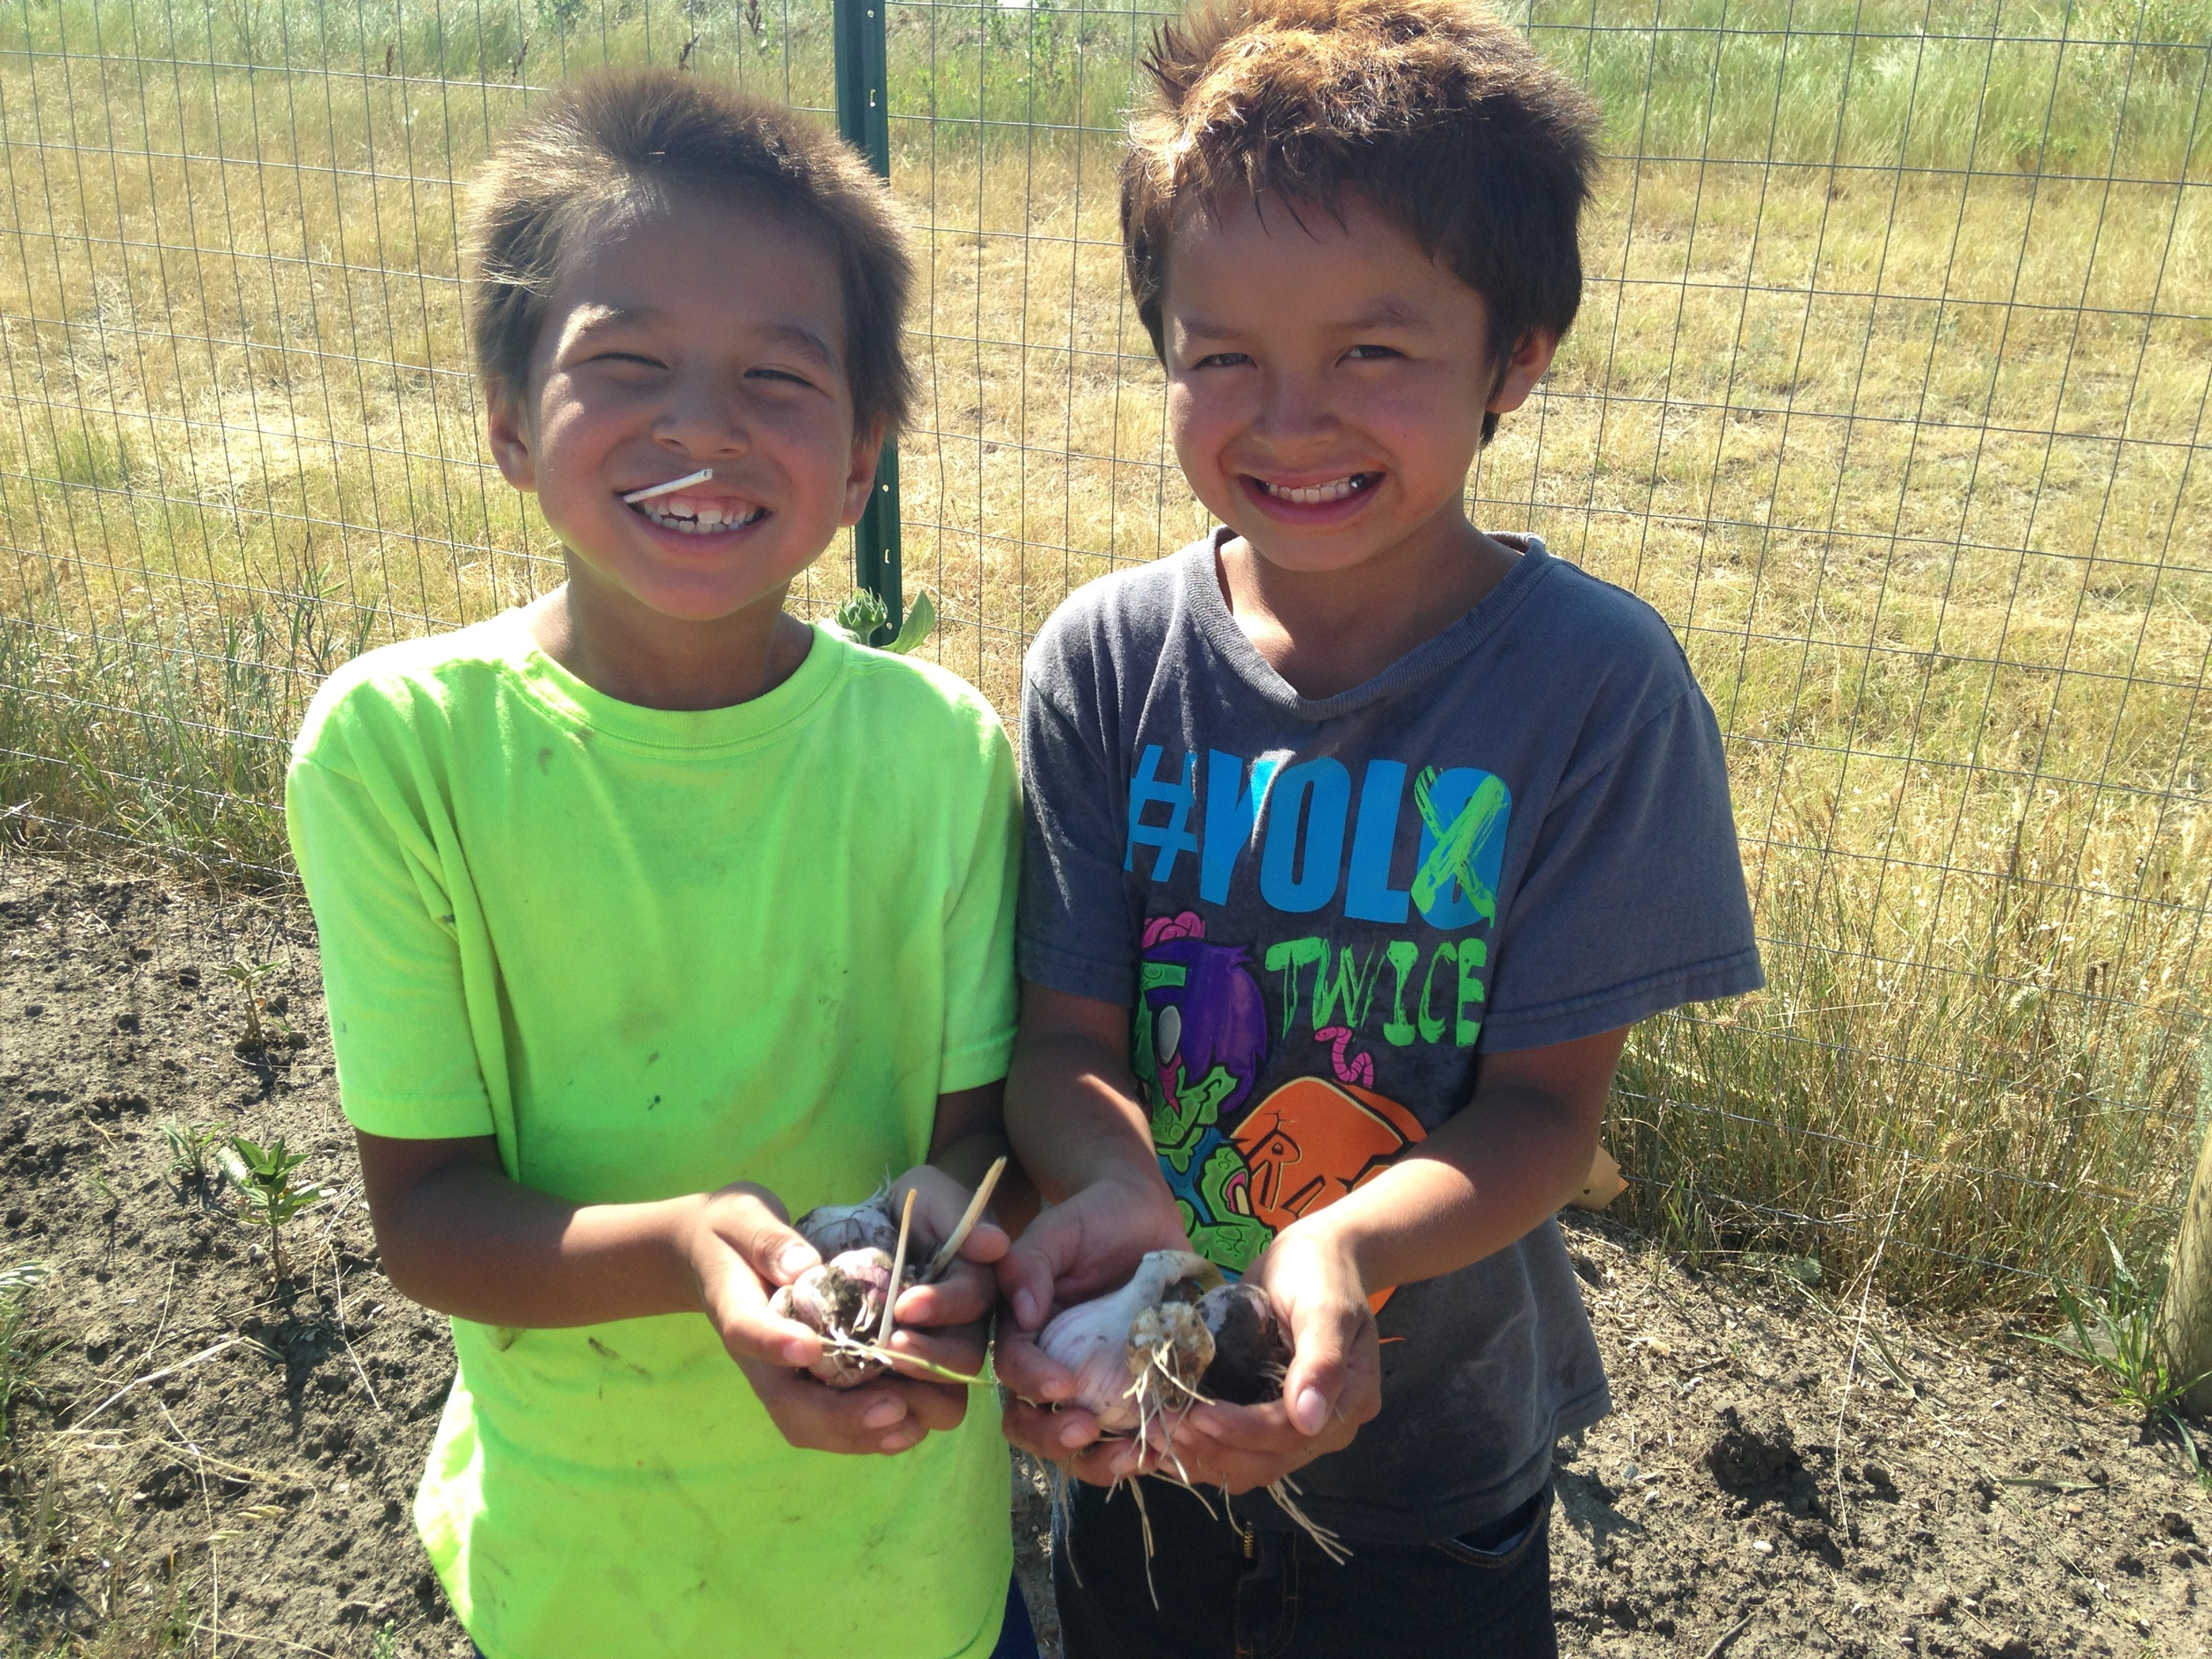 Helping hands in the garden! These young farmers helped to harvest garlic in the garden! (A.Gross, July 2015, La Plant)